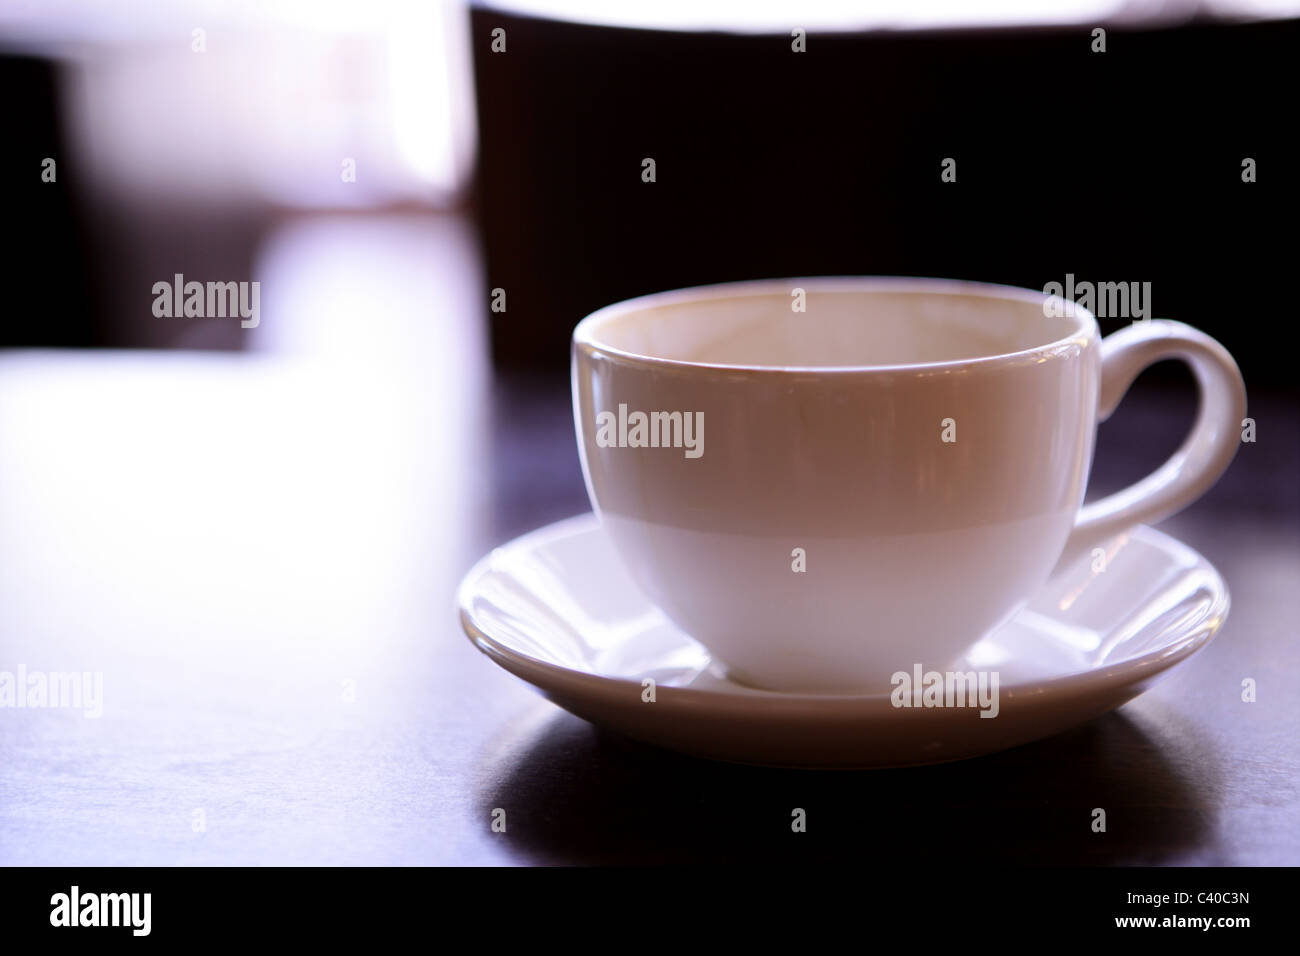 close up cup cafe white mug cups tableware mugs nice beauty beautiful unique uniqueness clarity clear refulgent & close up cup cafe white mug cups tableware mugs nice beauty ...